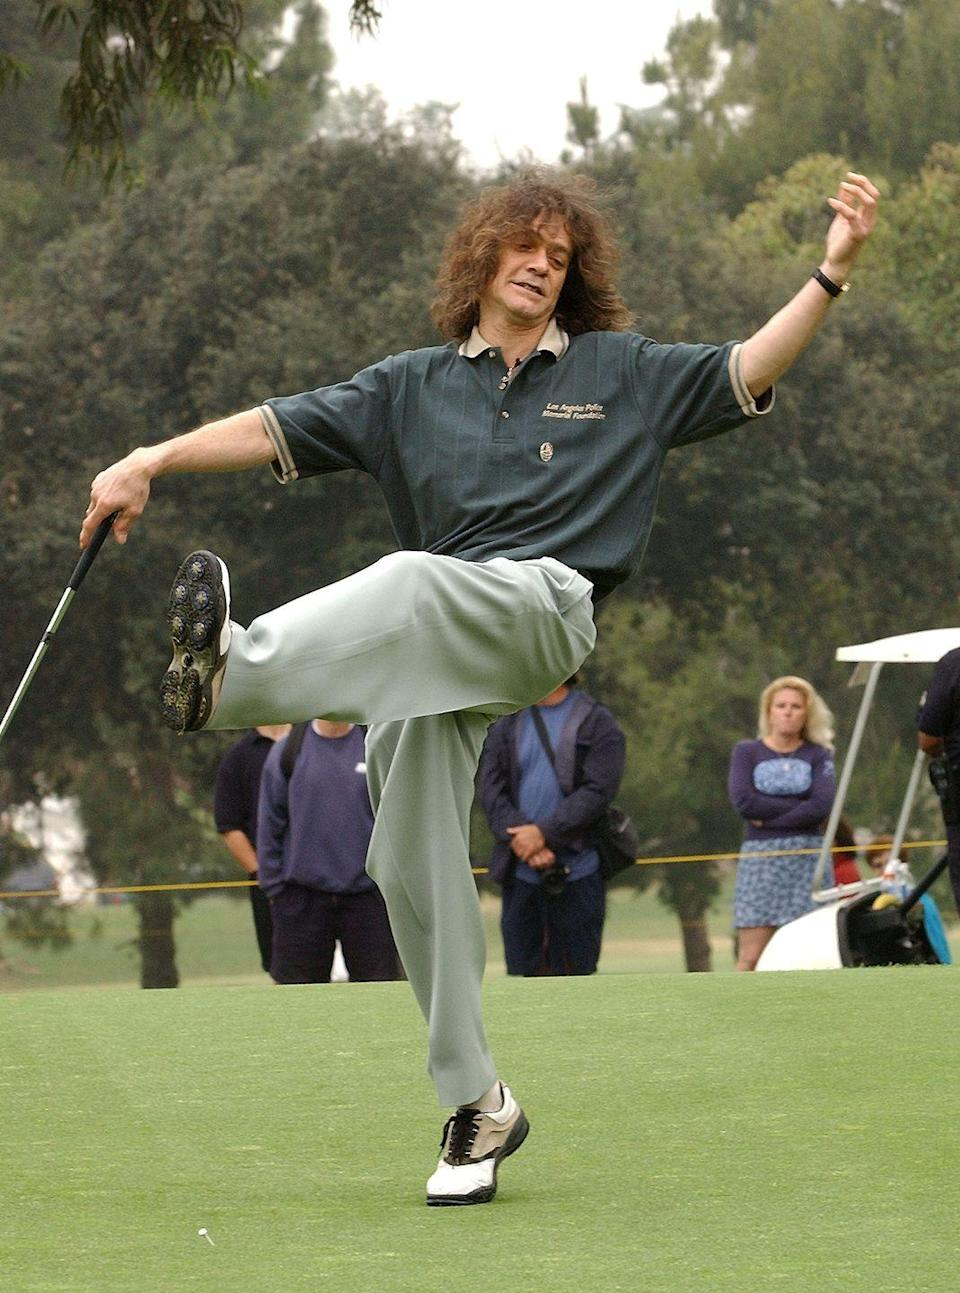 <p>Eddie Van Halen reacts to a putt during the 31st Annual Police-Celebrity Golf Tournament in 2002.</p>